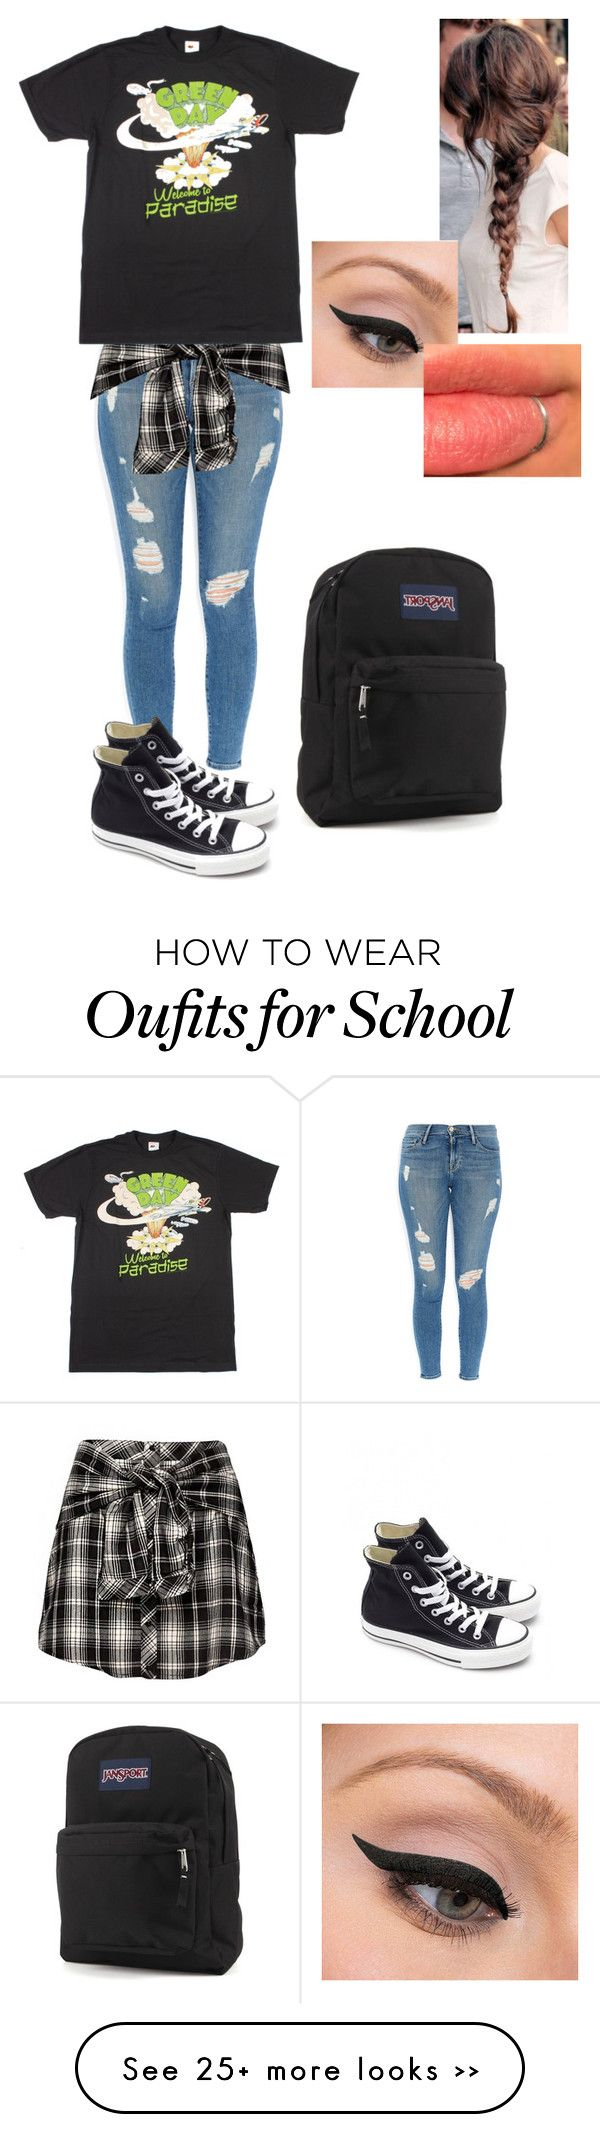 """My First Day of School Outfit"" by jigglypuff-irwin on Polyvore featuring Frame Denim, Converse, LORAC and JanSport"